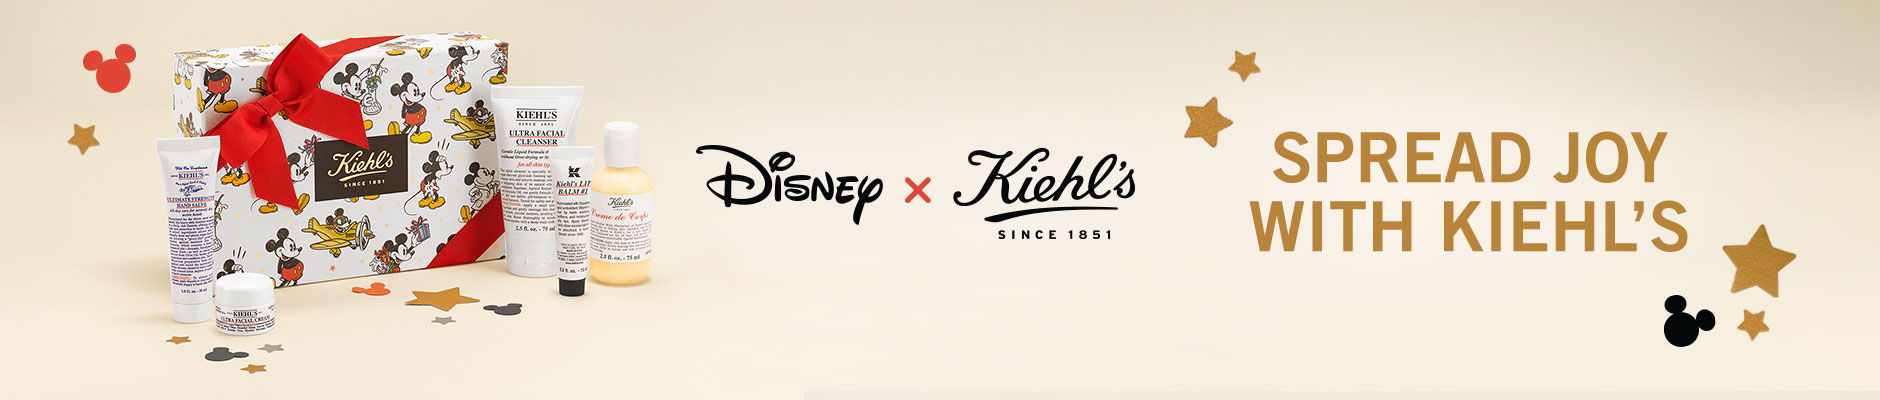 Disney x Kiehl's Since 1851 - Spread Joy With Kiehl's